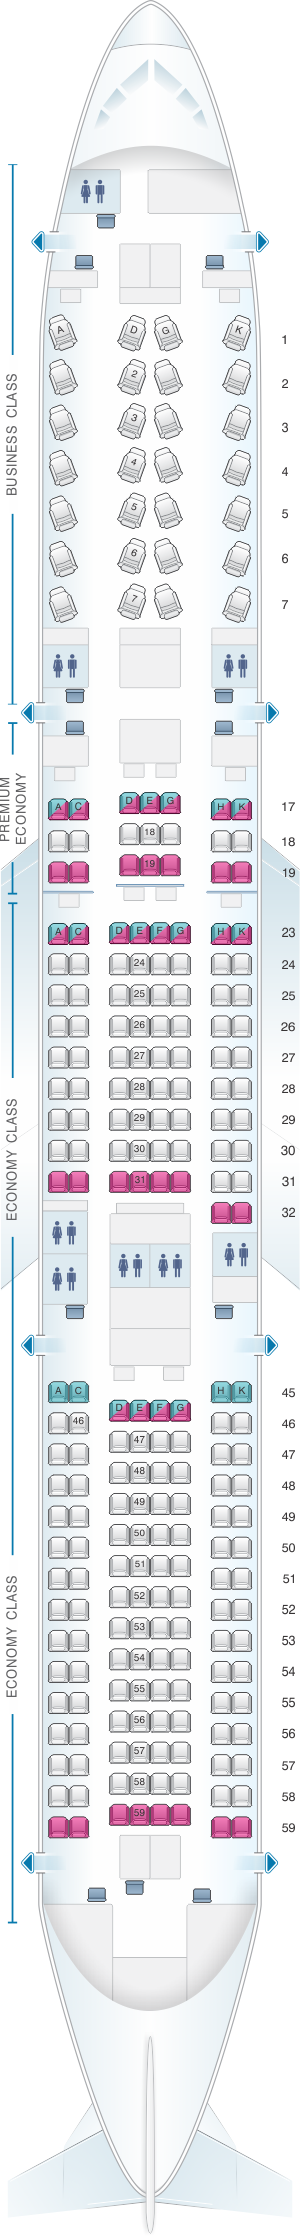 Seat map for Japan Airlines (JAL) Boeing B787-9 E92